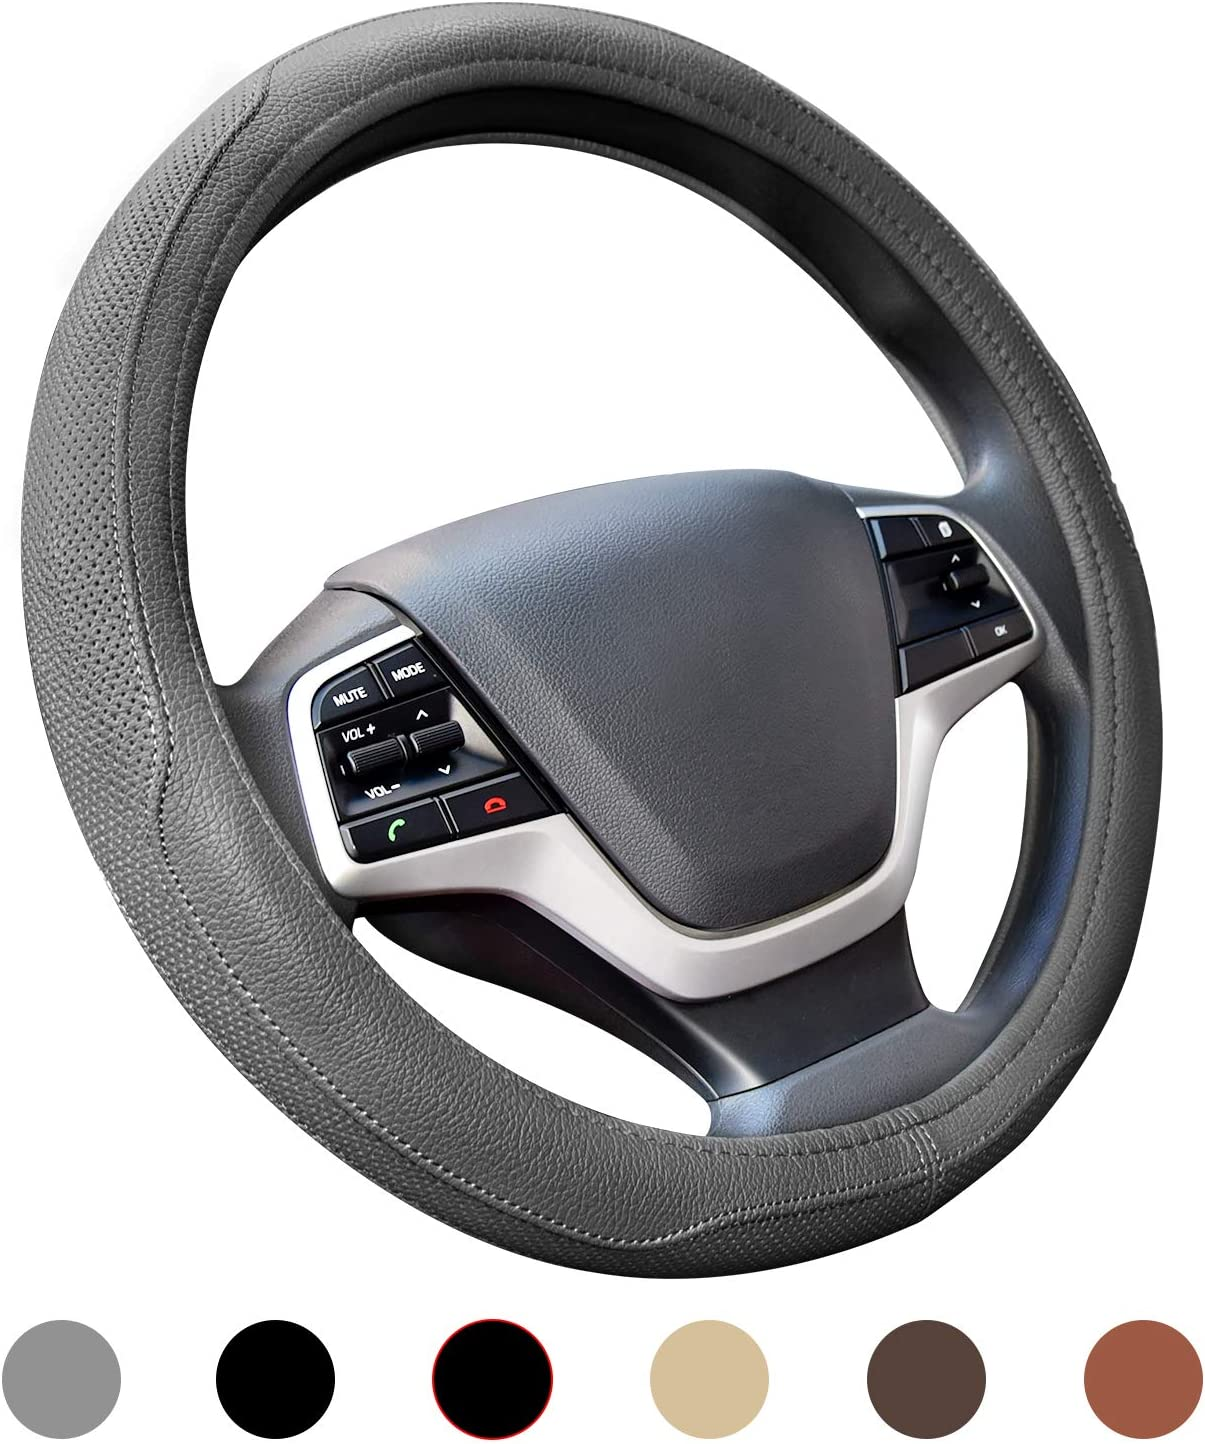 SEAZEN Steering Wheel Cover with Microfiber Leather Universal 15 inch Auto Car Steering Wheel Cover Black Breathable Anti-Slip Odorless